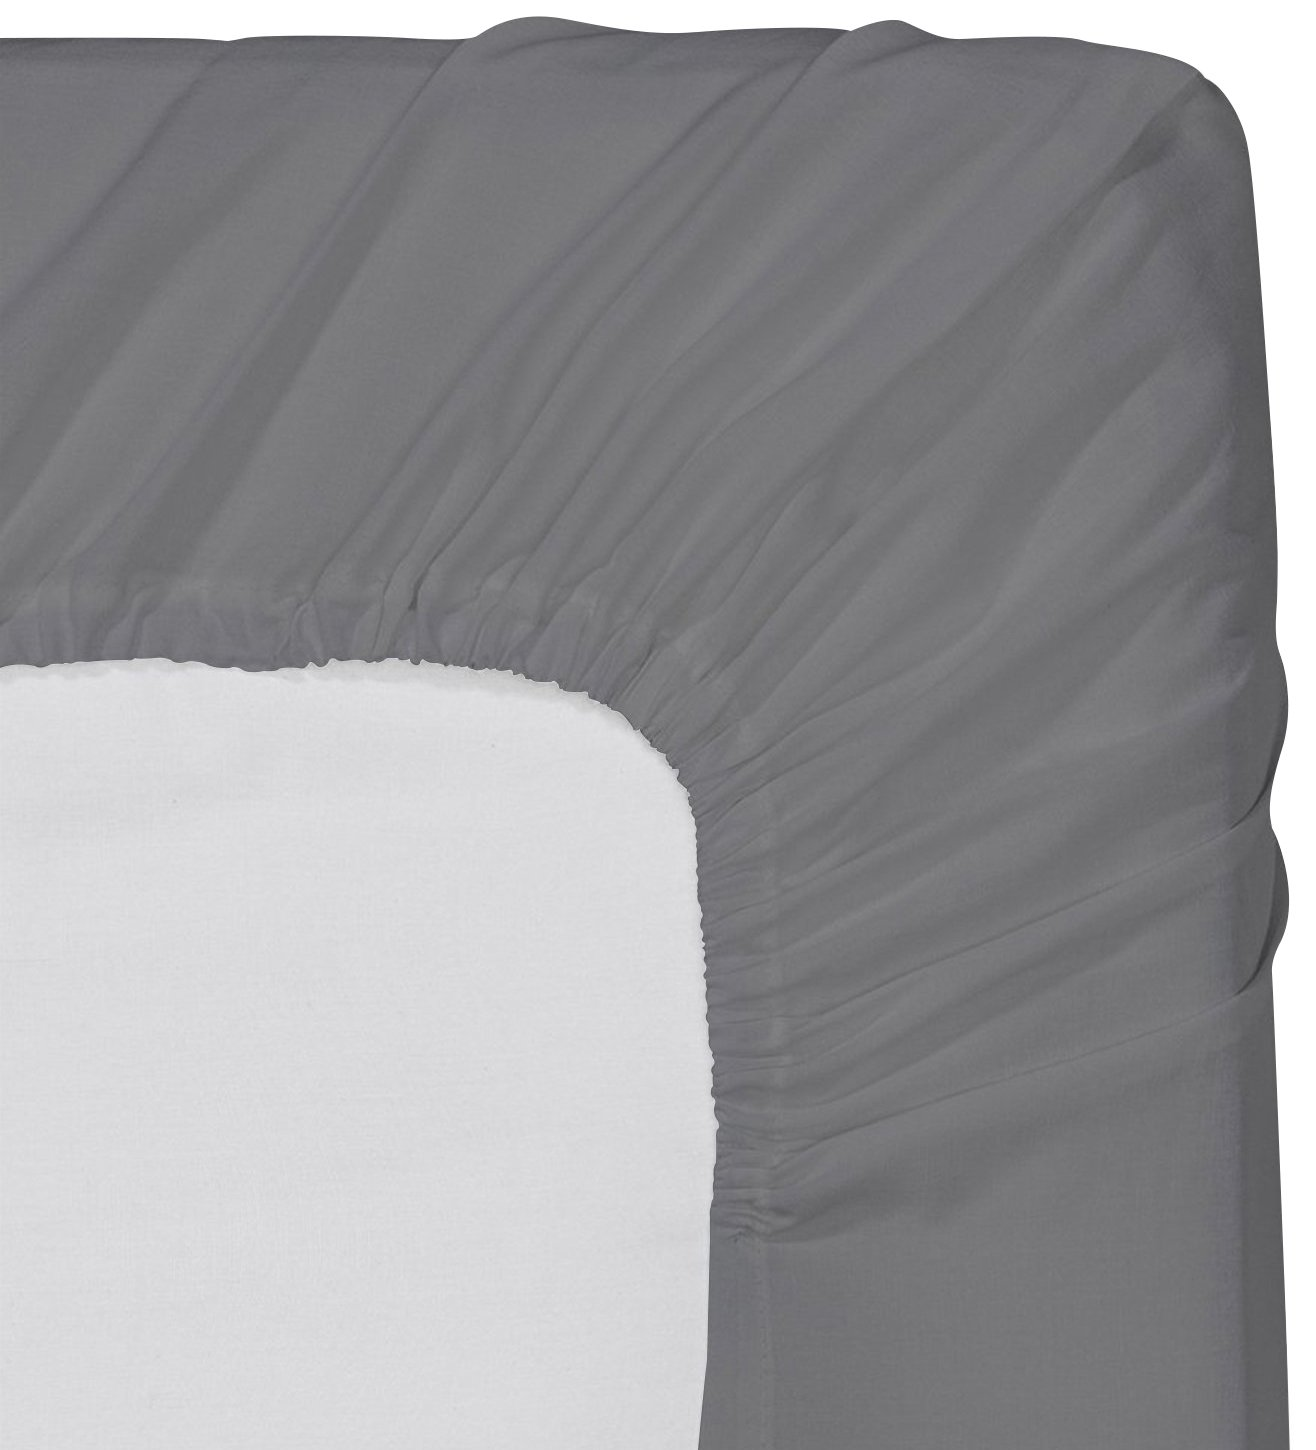 Utopia Bedding Fitted Sheet (Twin - Grey) - Deep Pocket Brushed Microfiber, Breathable, Extra Soft and Comfortable - Wrinkle, Fade, Stain and Abrasion Resistant by Utopia Bedding